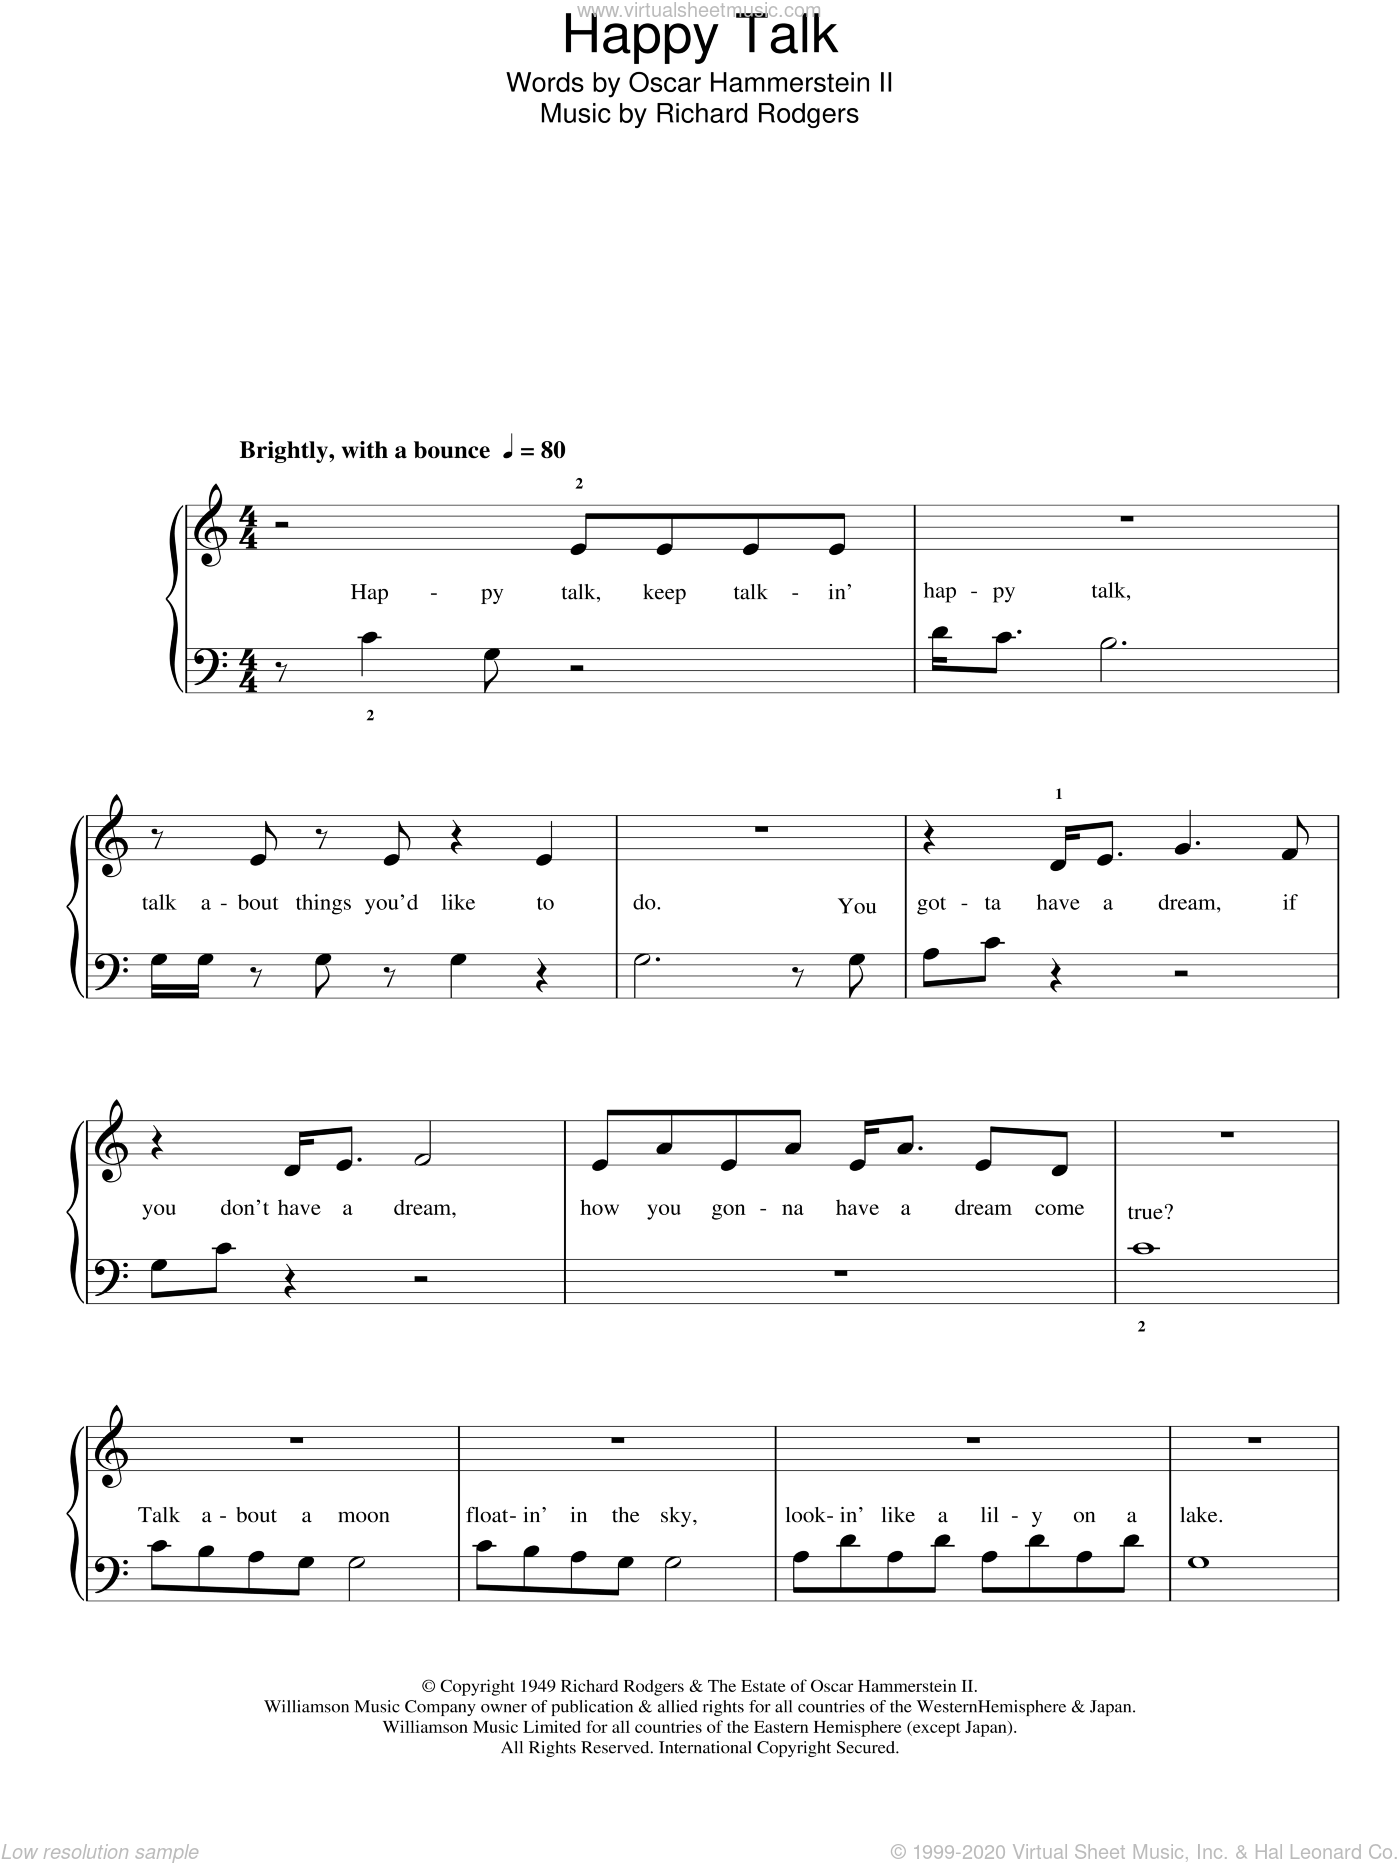 Happy Talk sheet music for piano solo by Richard Rodgers